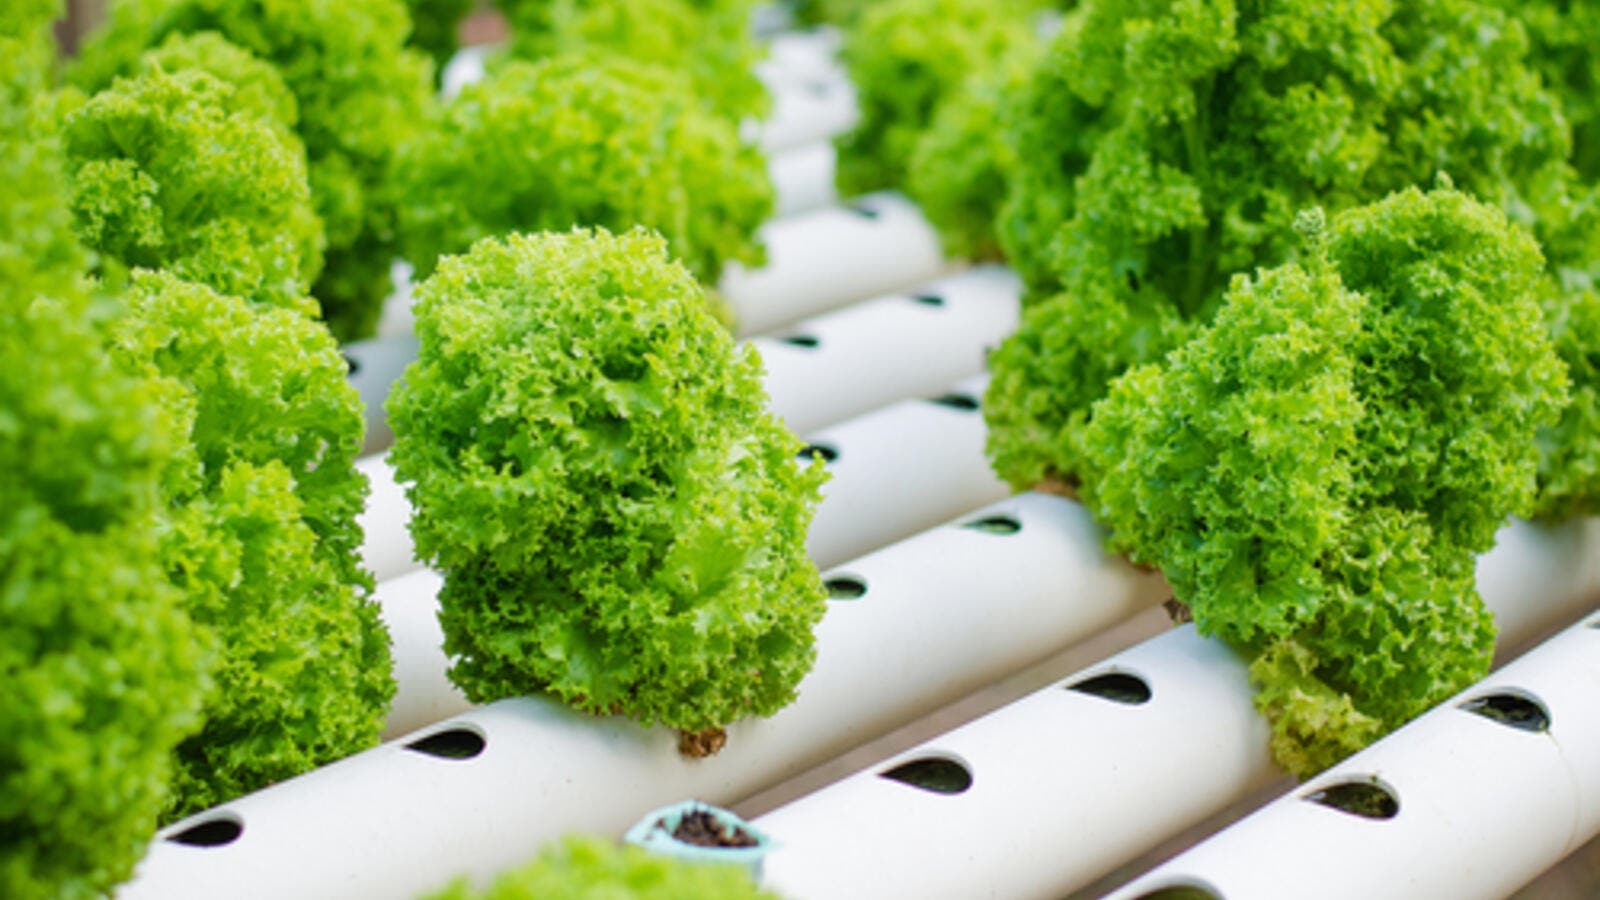 Cora salad grown by hydroponics for illustrative purposes. (Shutterstock)